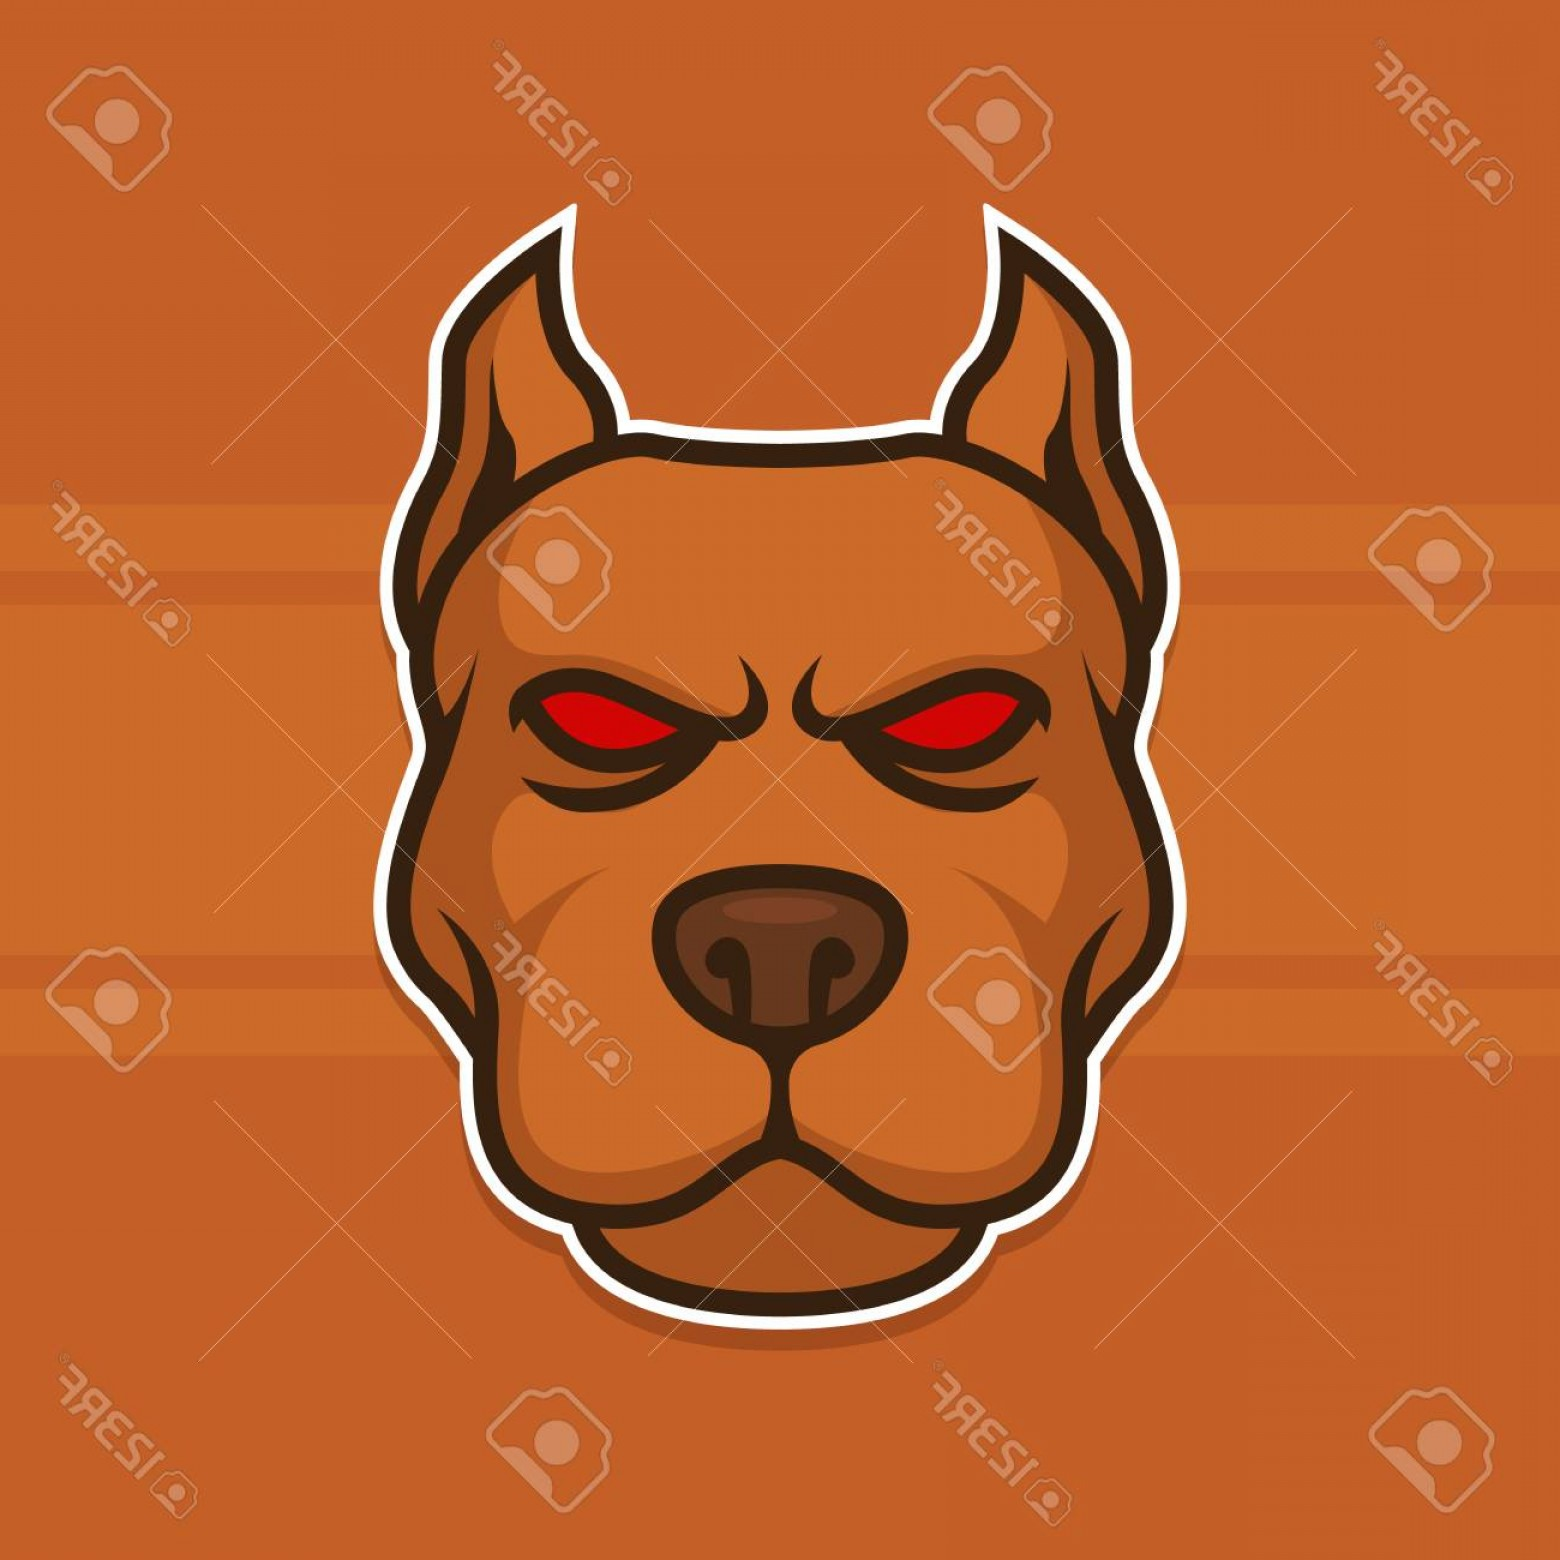 Dog Mascot Vector: Photostock Vector Dog Head Pit Bull Animal Wild Vector Illustration Logo Mascot